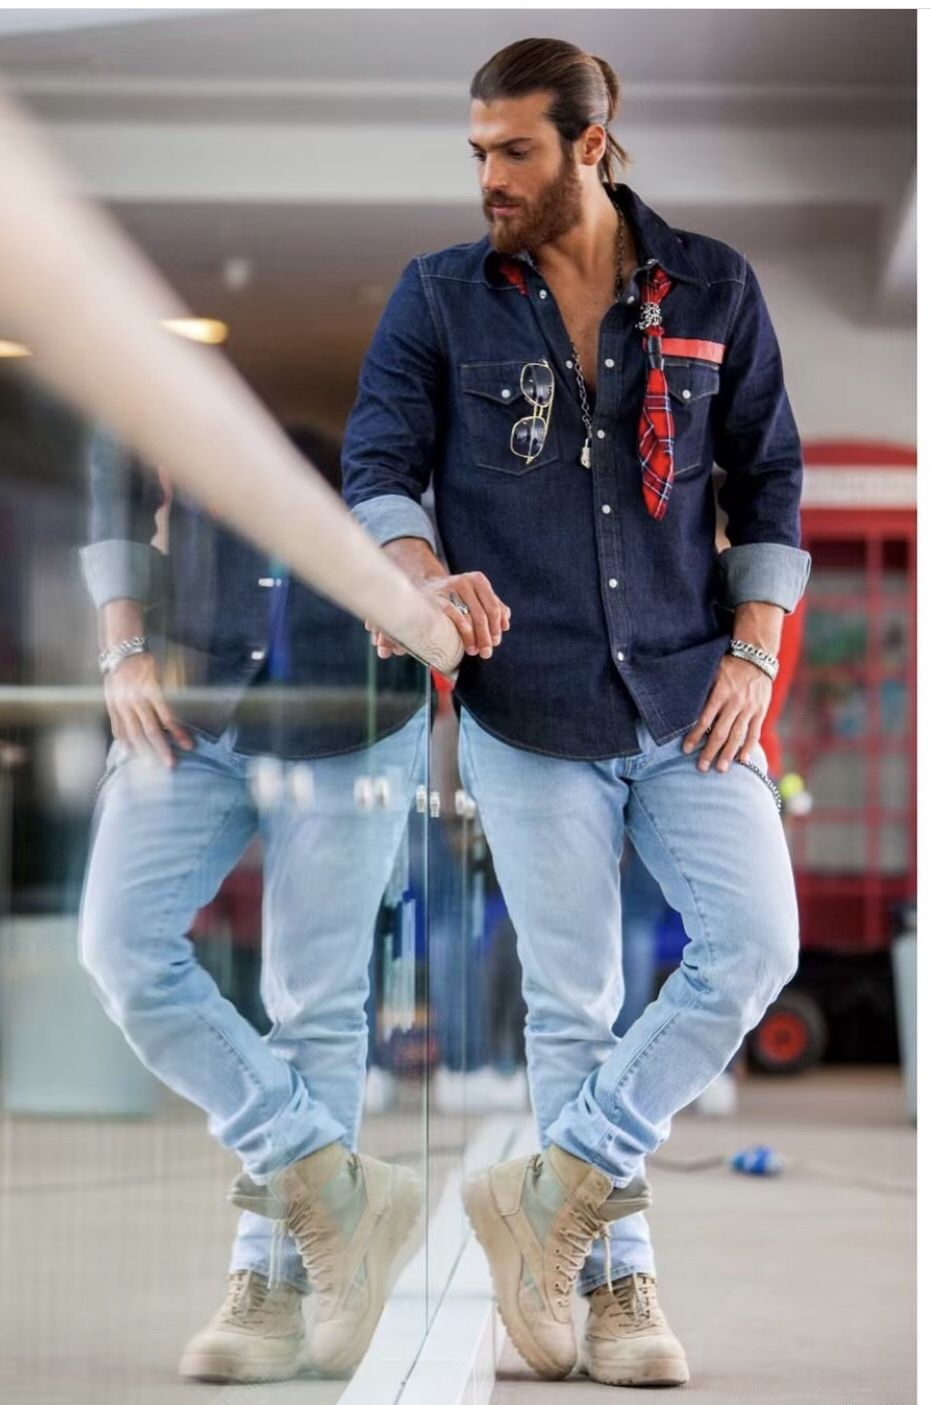 canyaman looking #Gabi lousy he #strikeapose in this